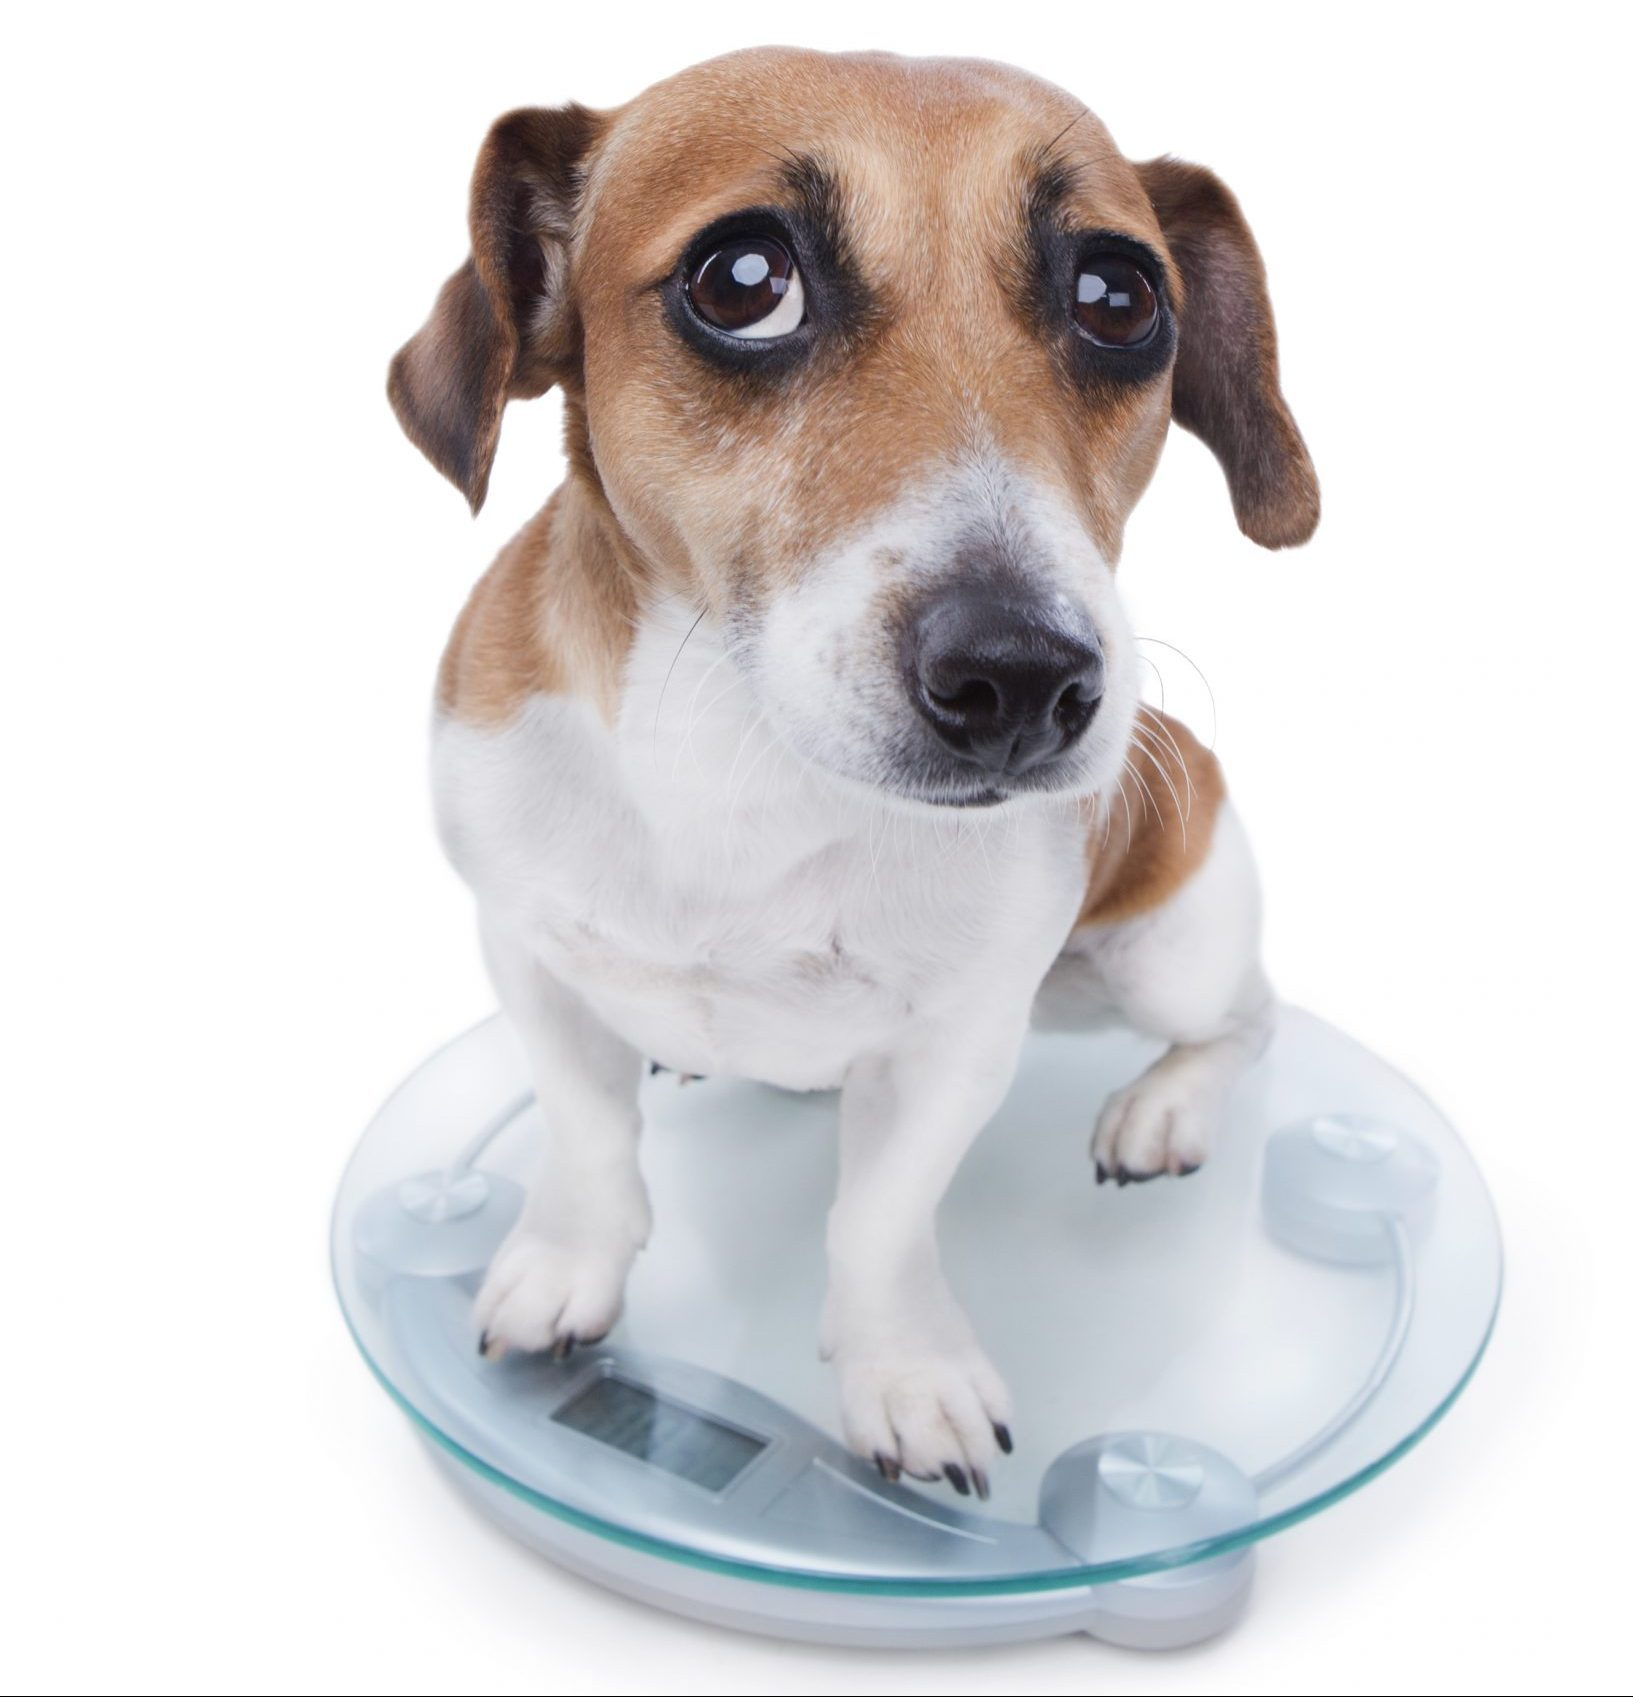 Weight loss tips for dogs